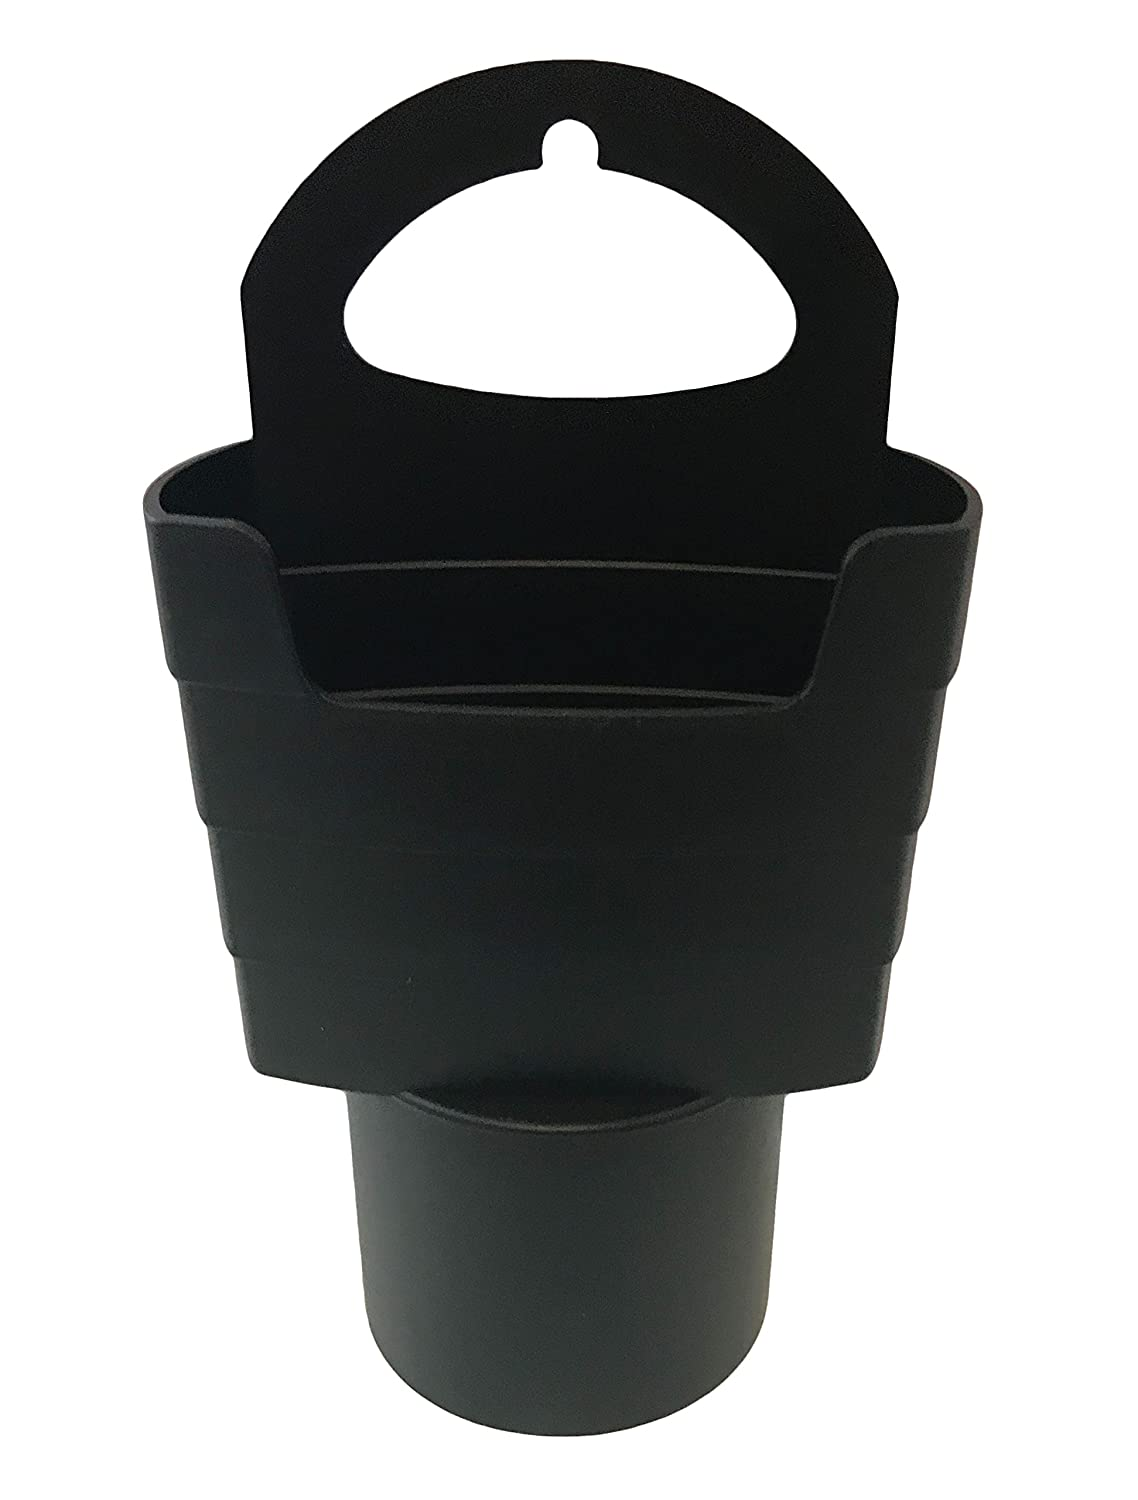 'Fries on the Fly' Universal Car French Fry Holder for Cup Holder - Perfect White Elephant Idea, Stocking Stuffer or Holiday Present 8172t1invGL